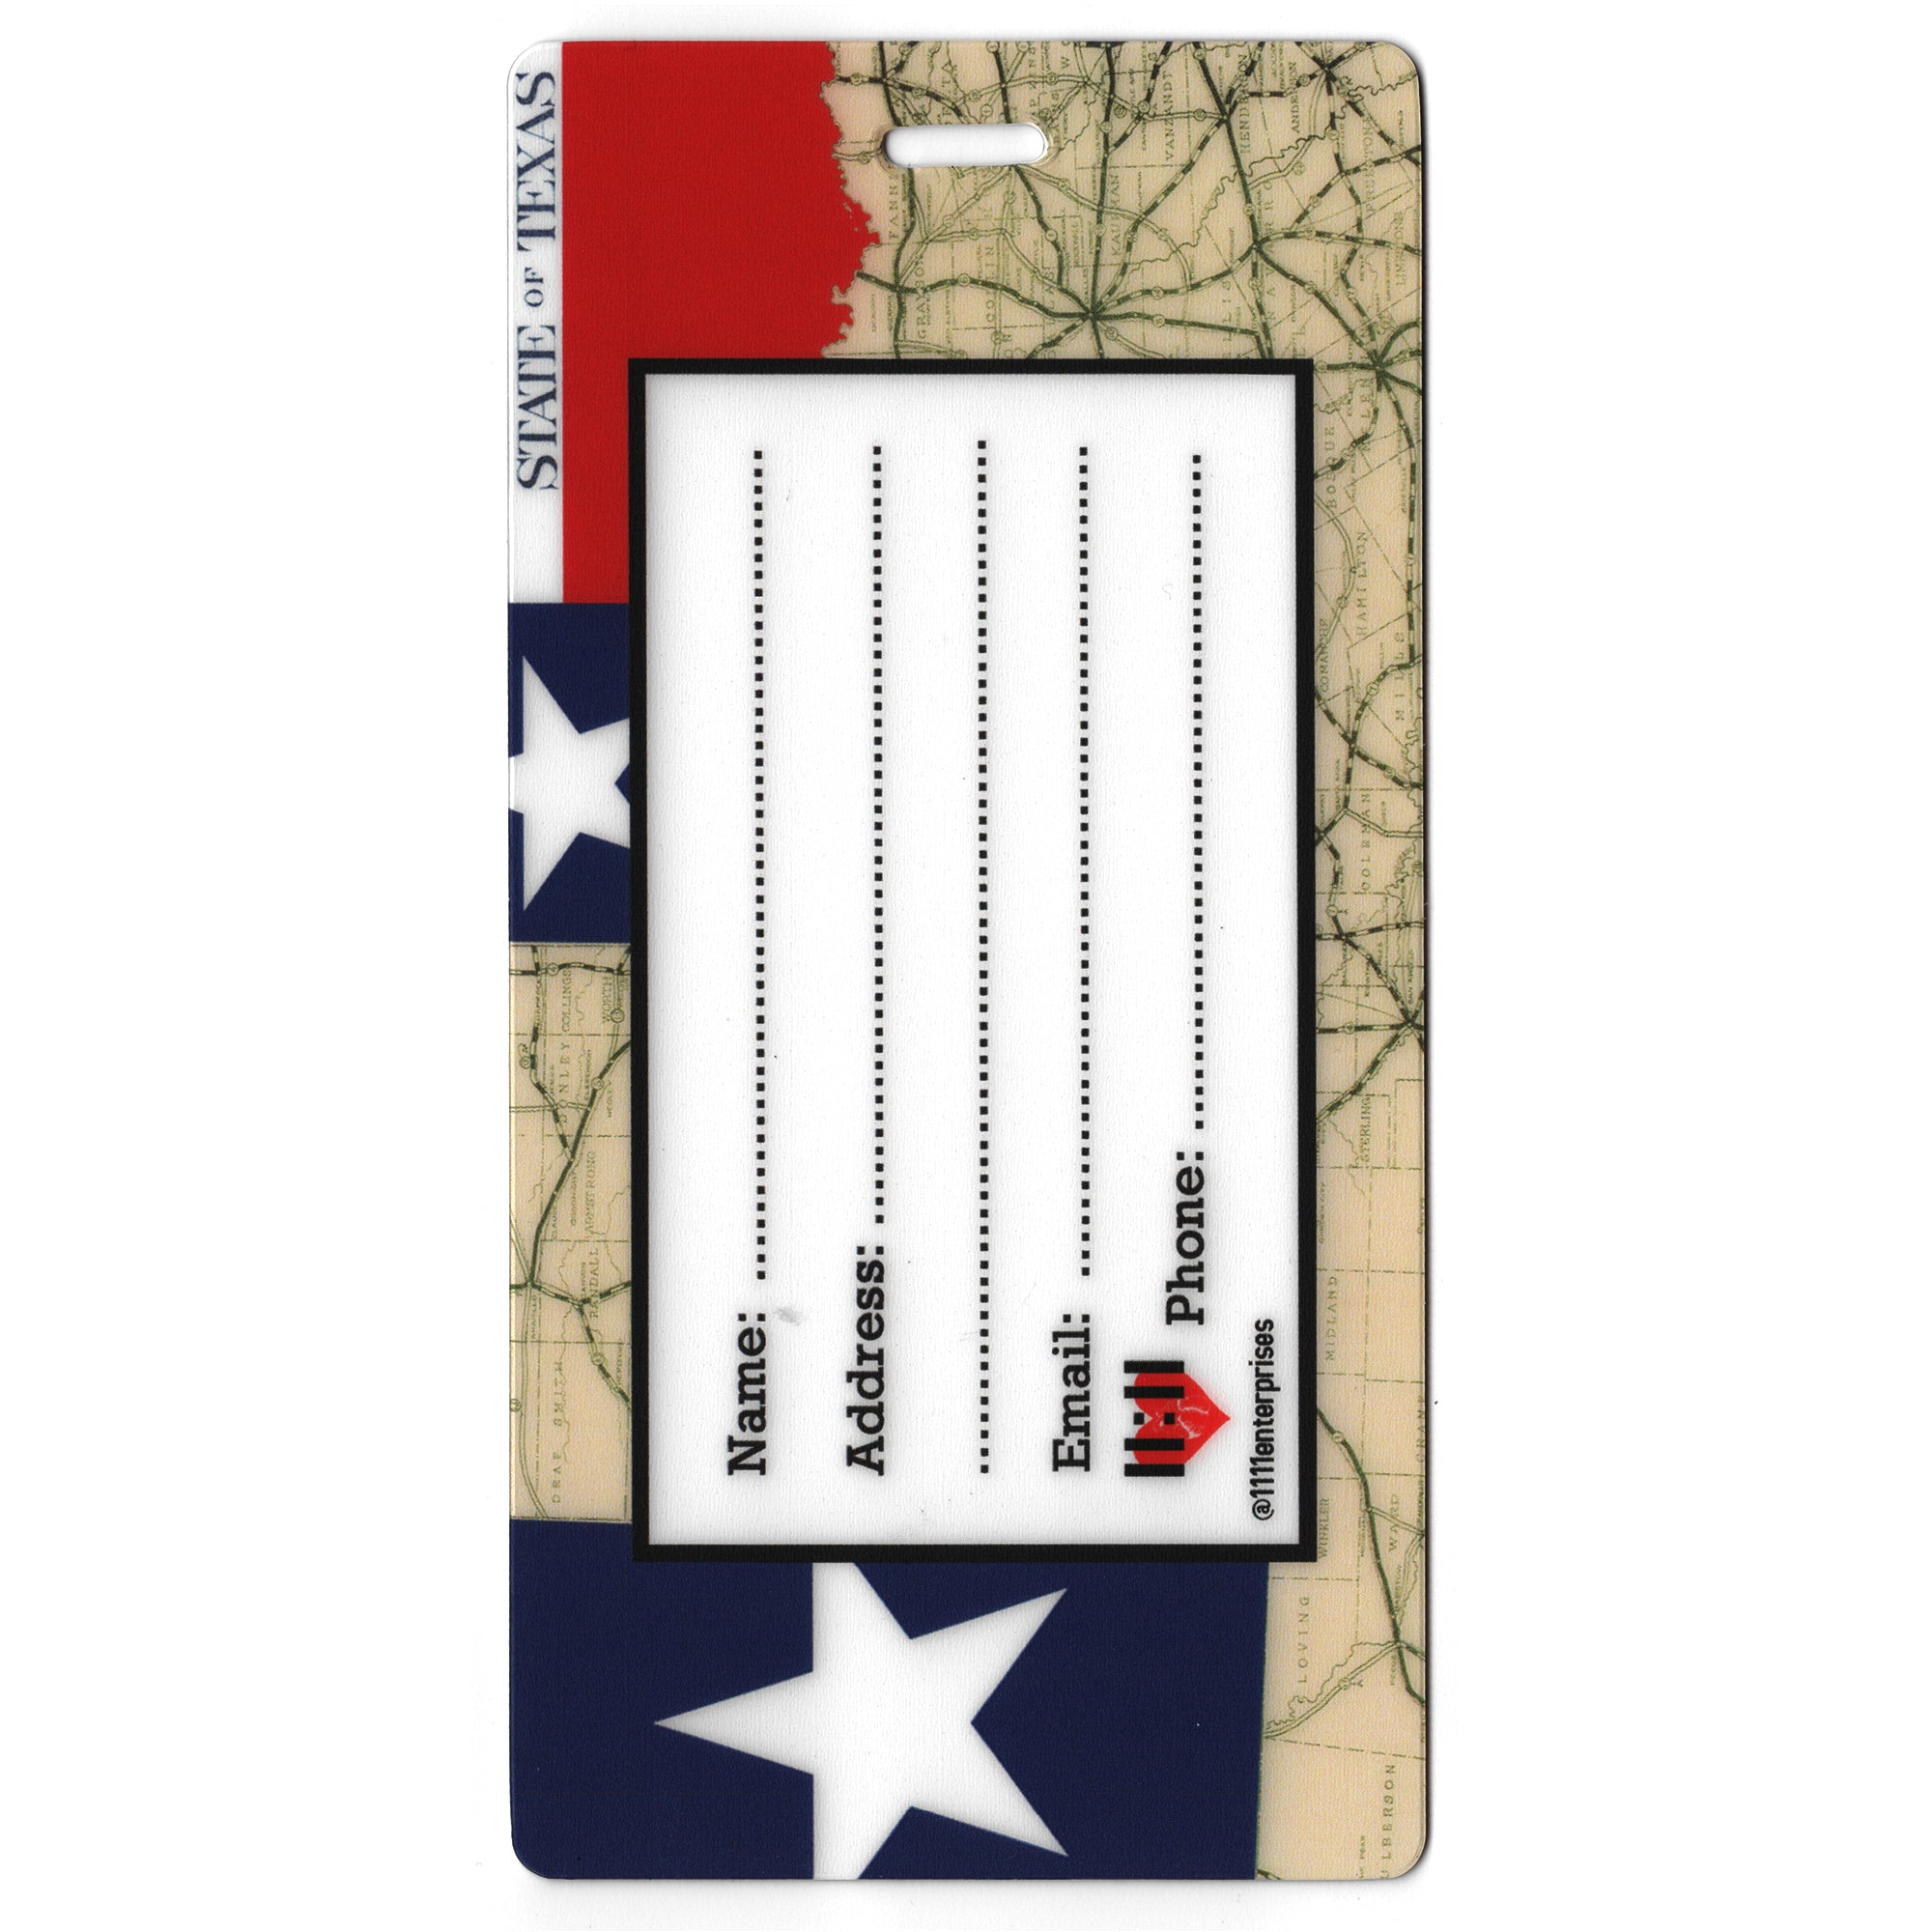 State of Texas Luggage Bag Tag Set - 2 pc, Large by 11:11 Enterprises